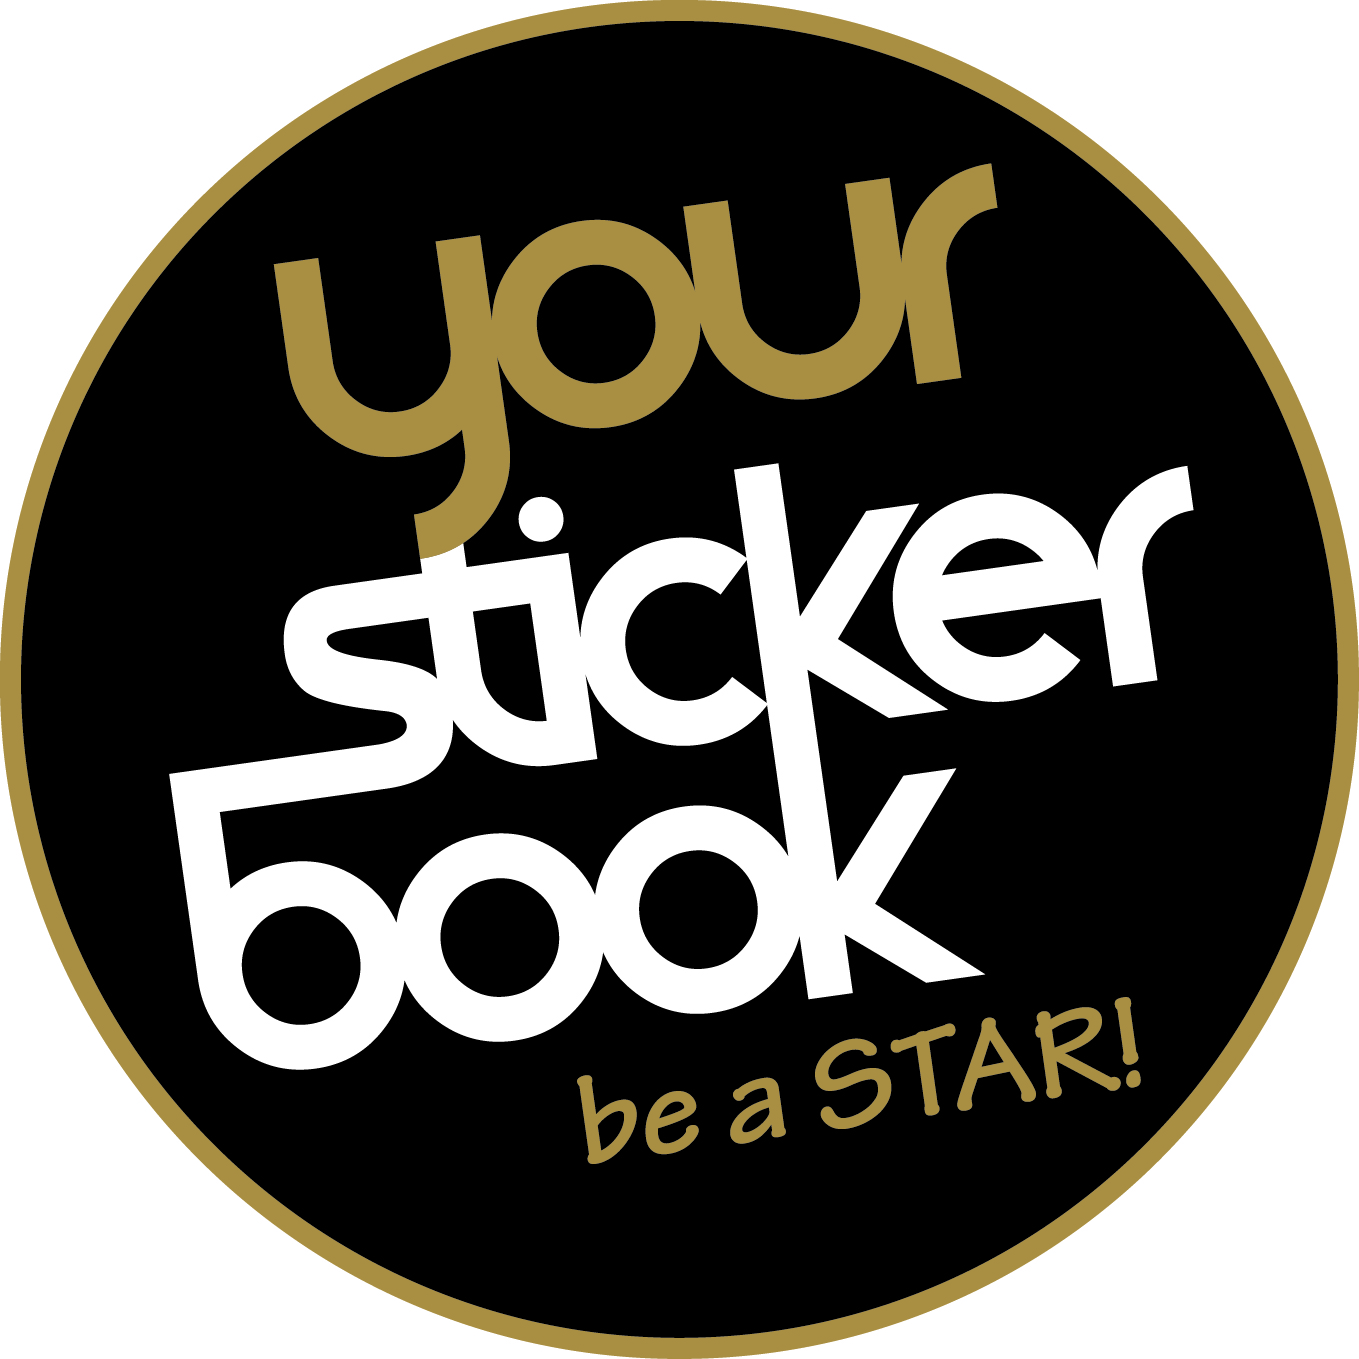 YourStickerBook